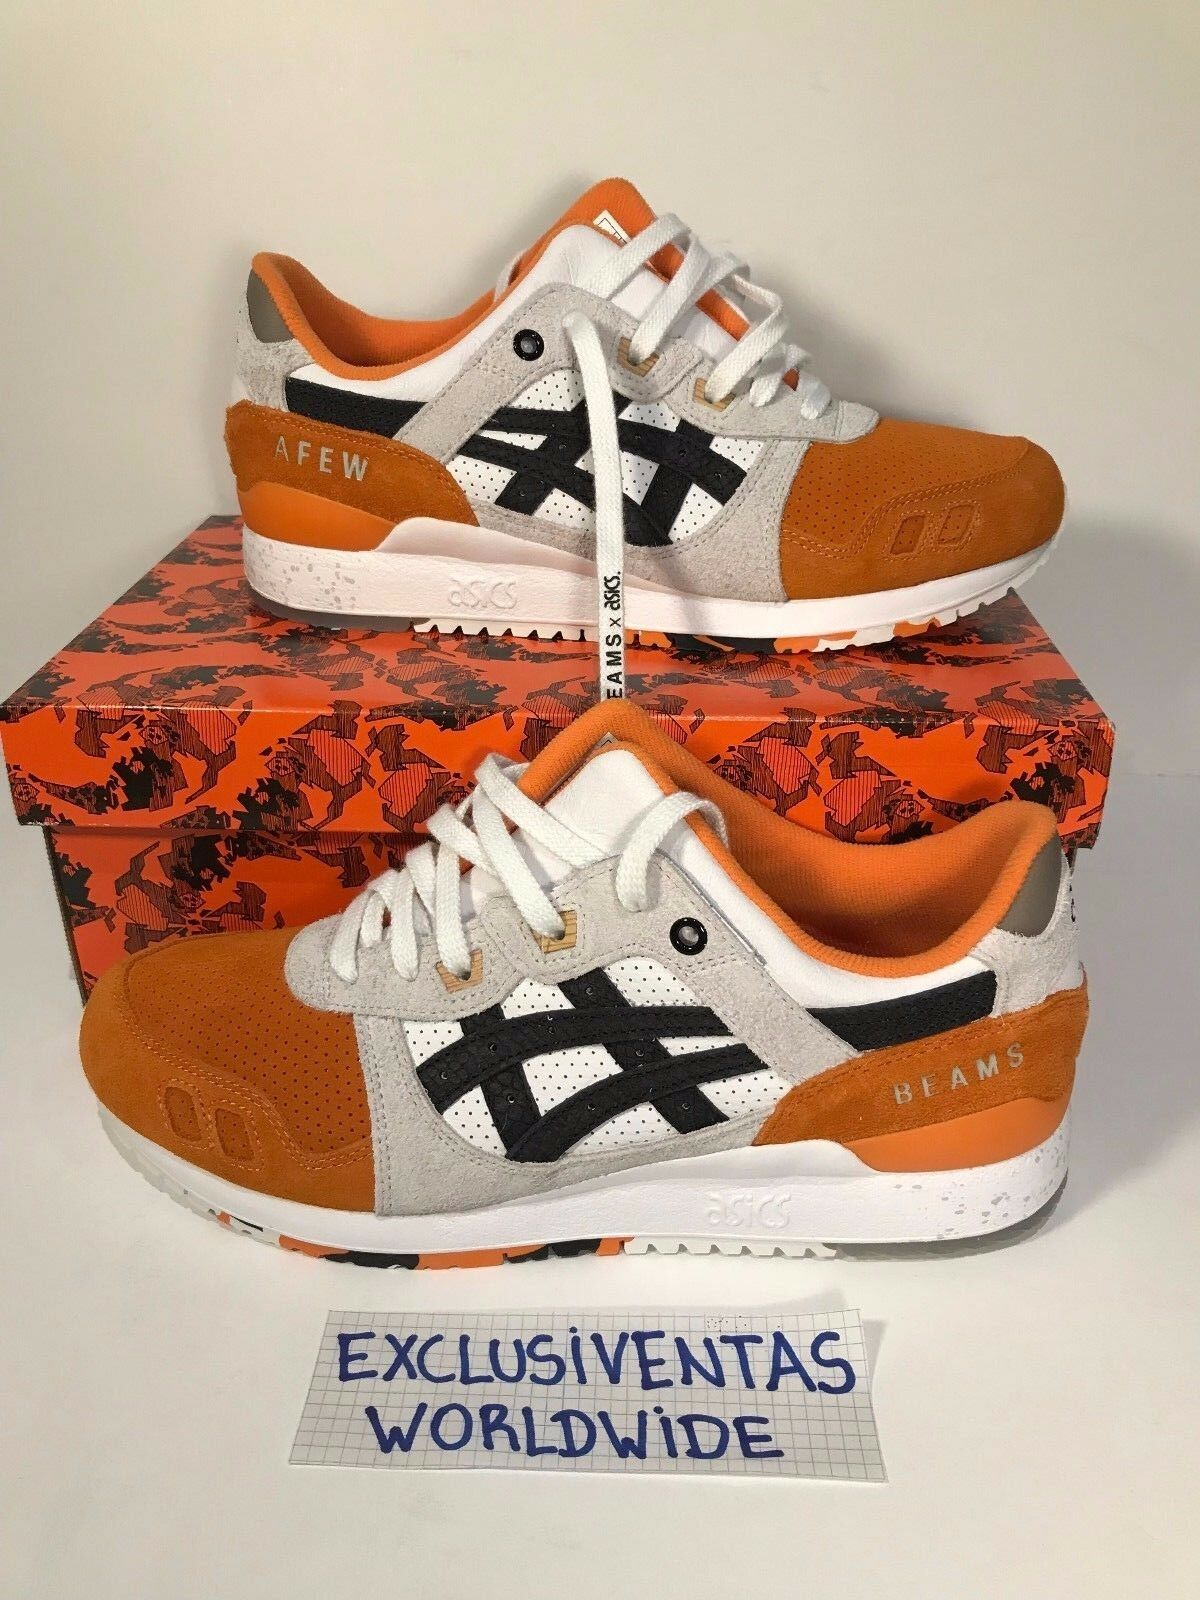 Asics x BEAMS x Afew gel lyte 3 orange Koi DSWT US 7   11 (UK  6   10)